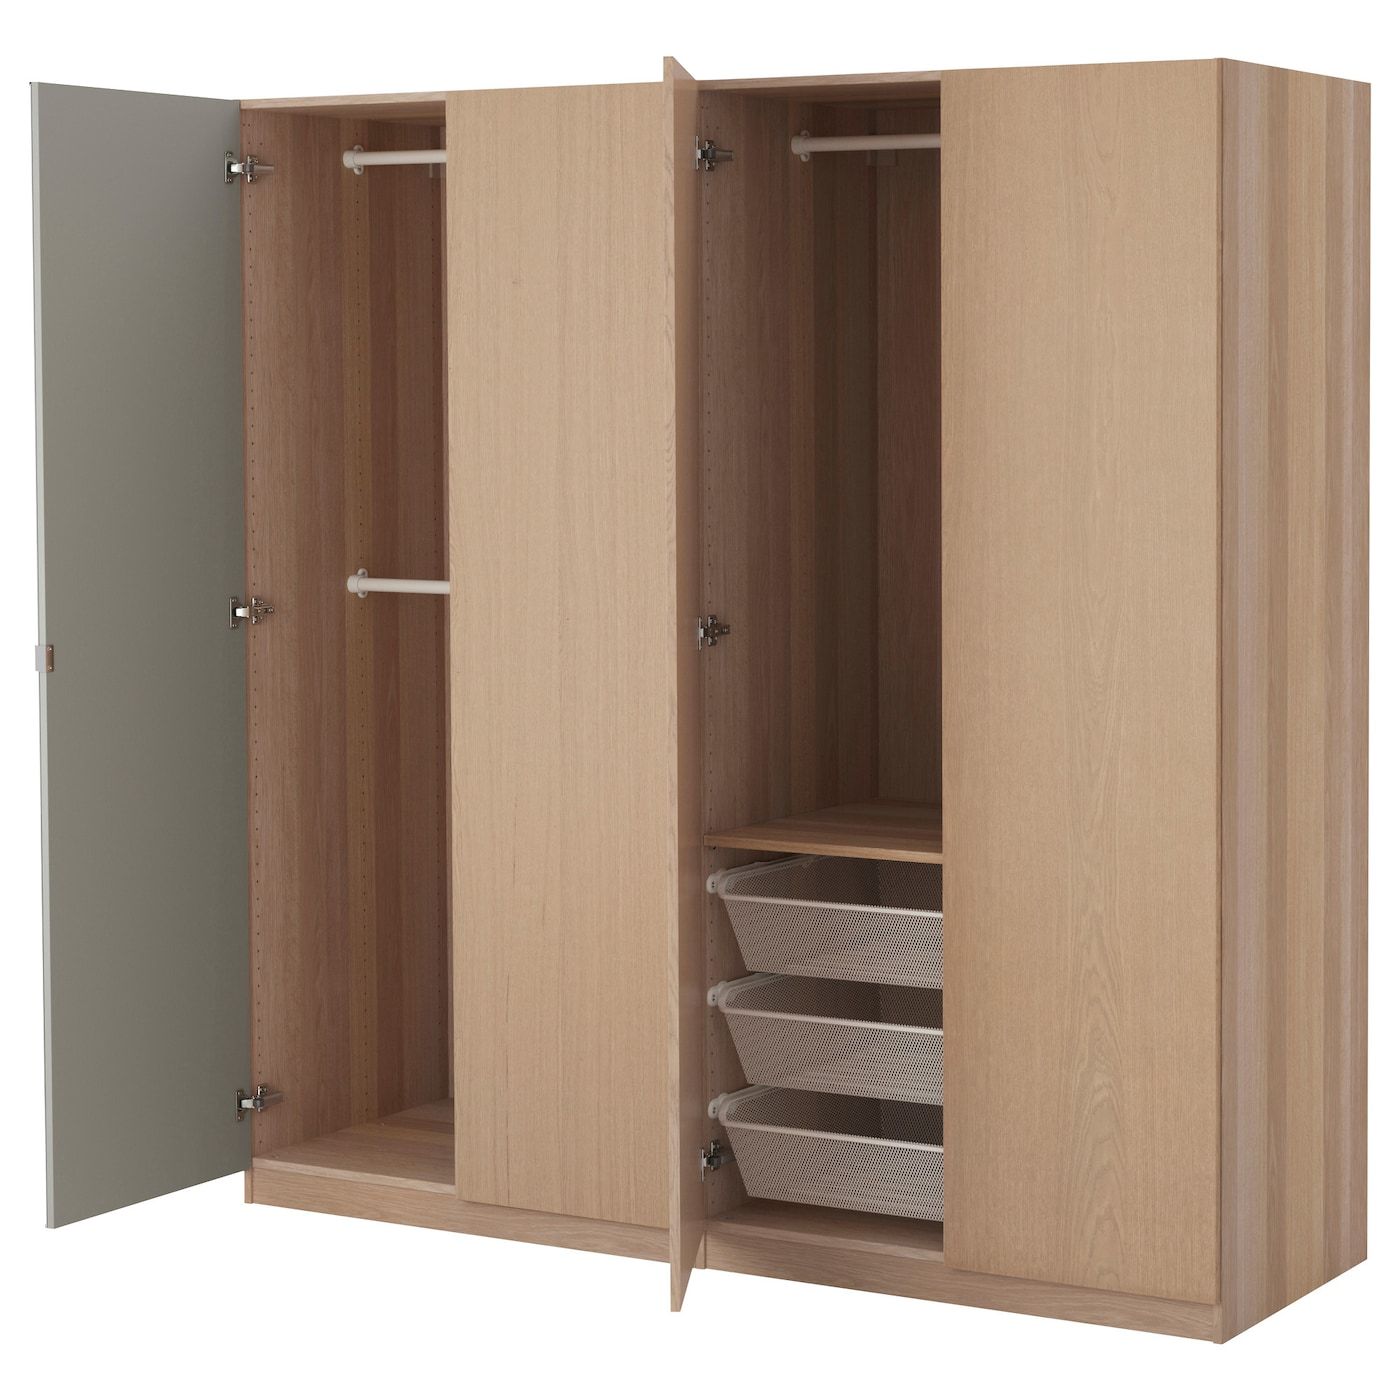 pax wardrobe white stained oak effect nexus vikedal 200x60x201 cm ikea. Black Bedroom Furniture Sets. Home Design Ideas